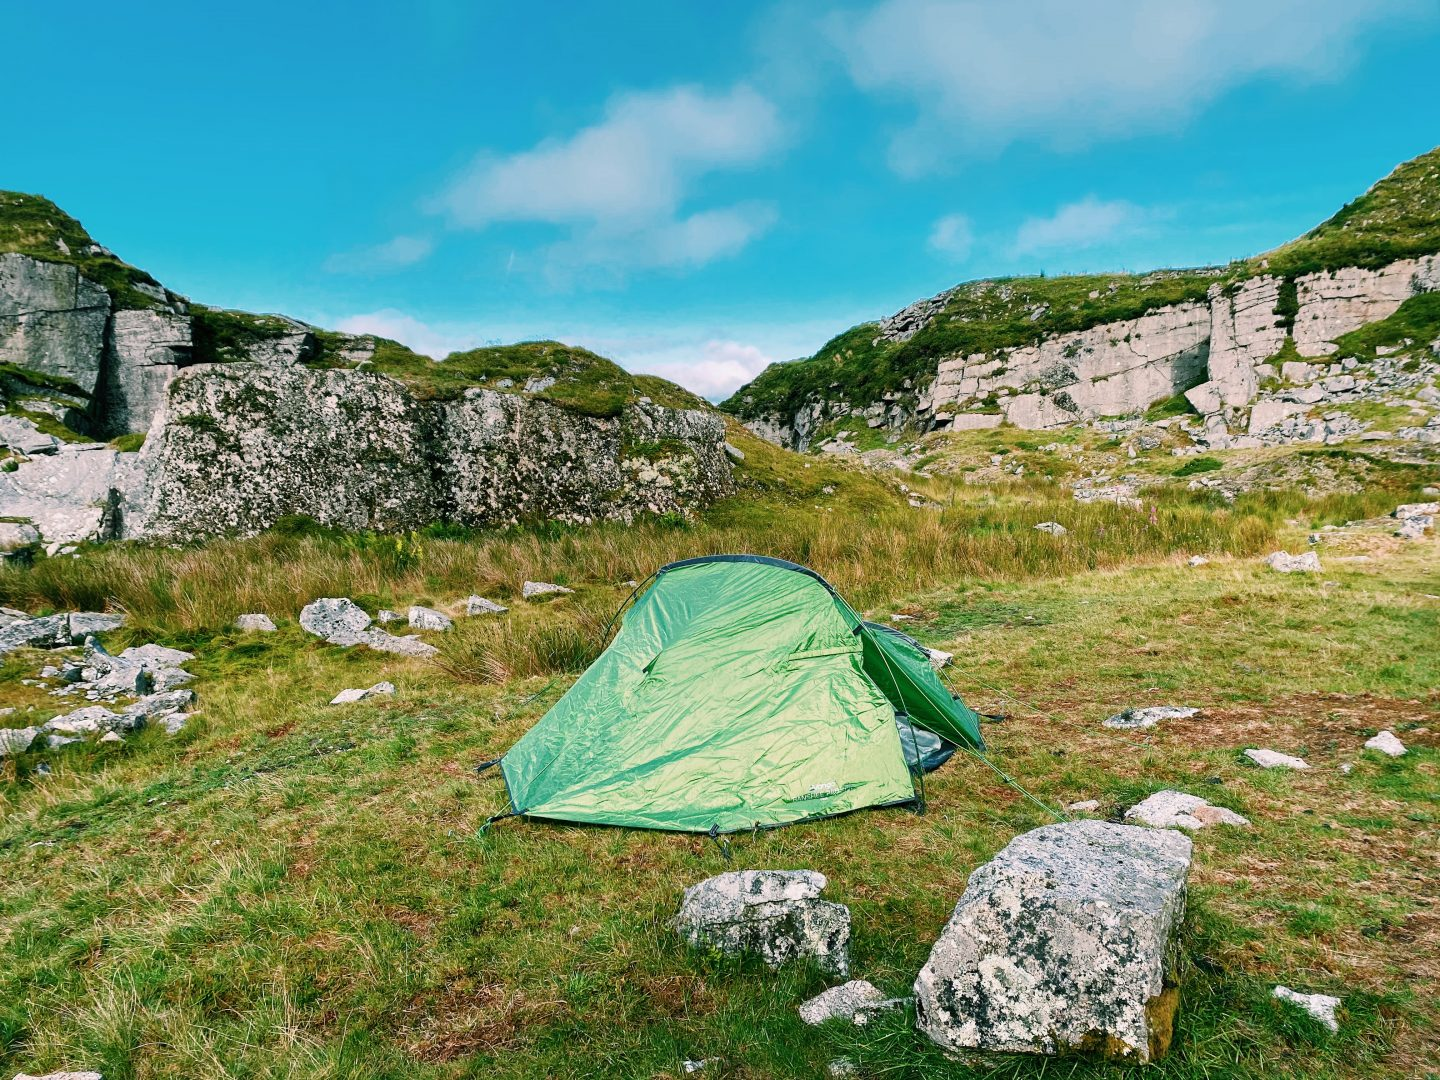 The Most Scenic Spots To Go Wild Camping In The UK ...